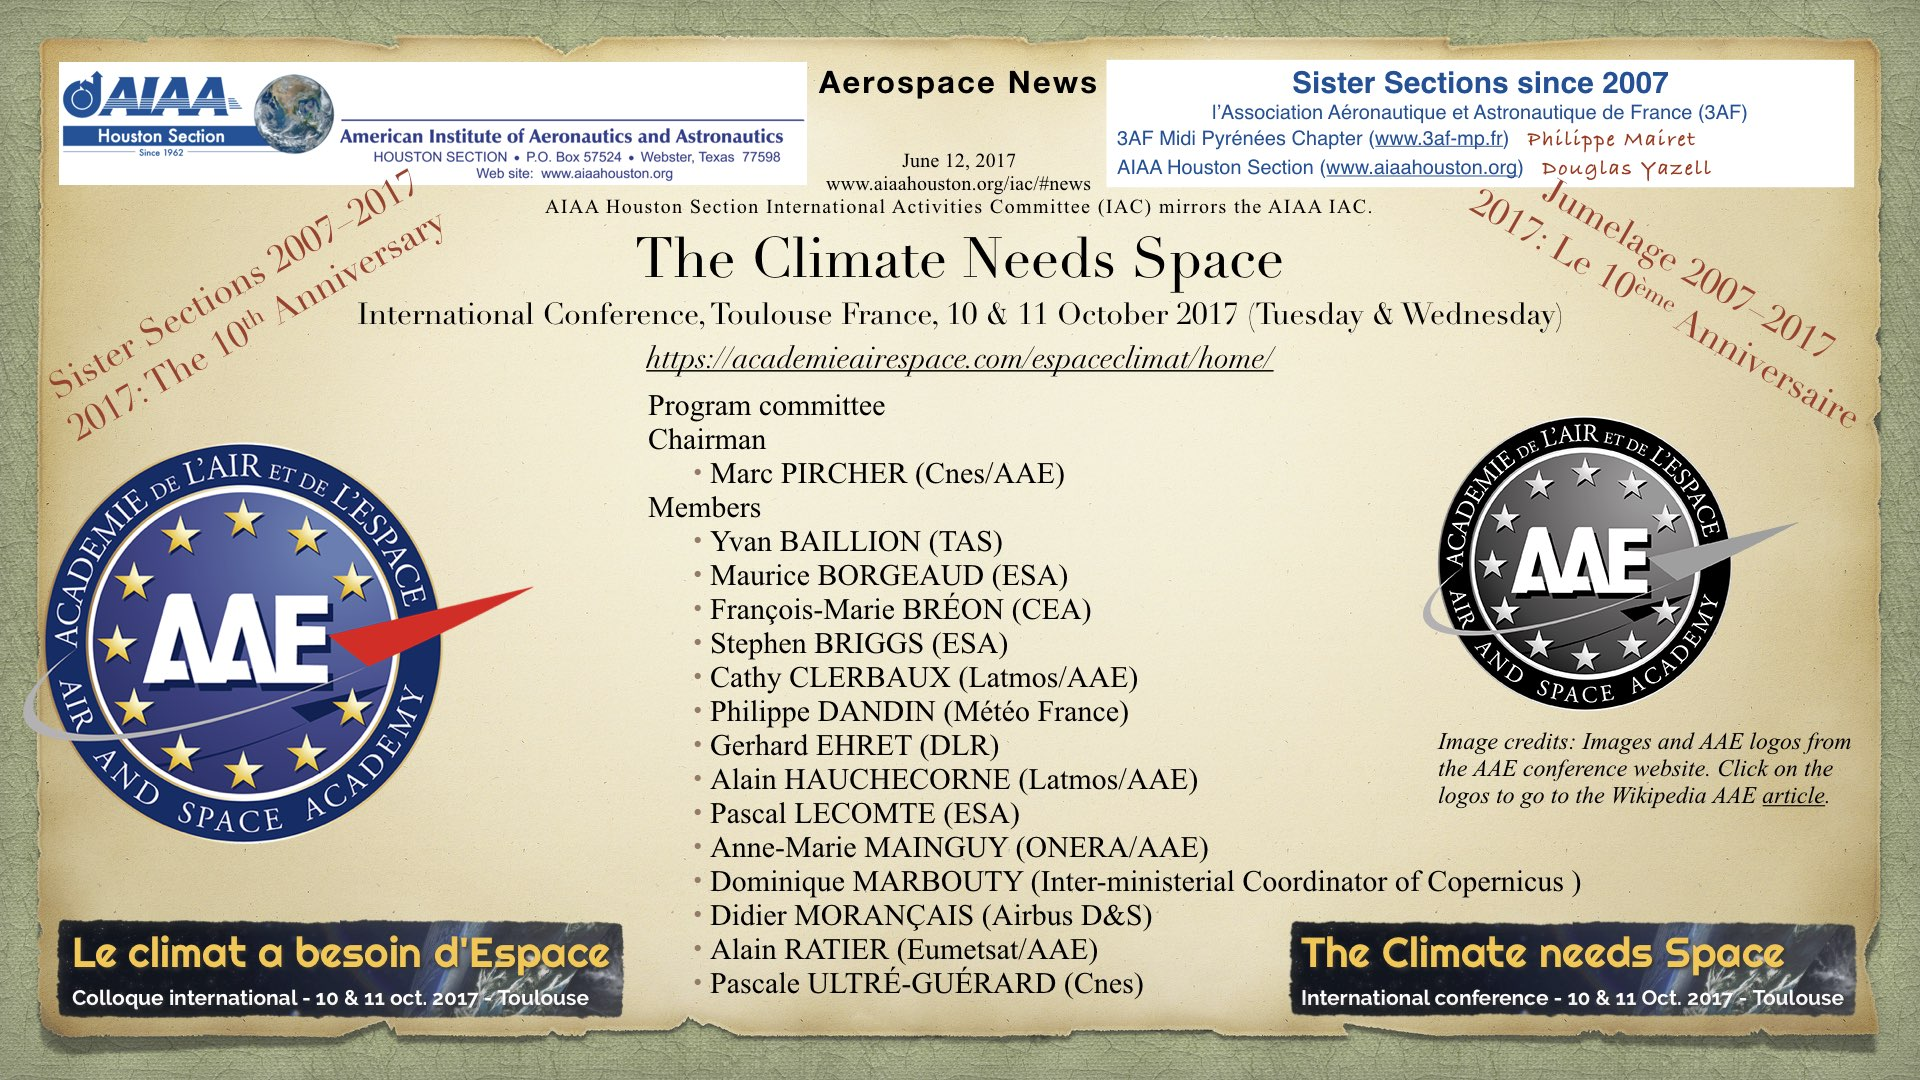 Above: The Climate Needs Space. An upcoming climate conference from AAE in Toulouse France. (Click to zoom.)